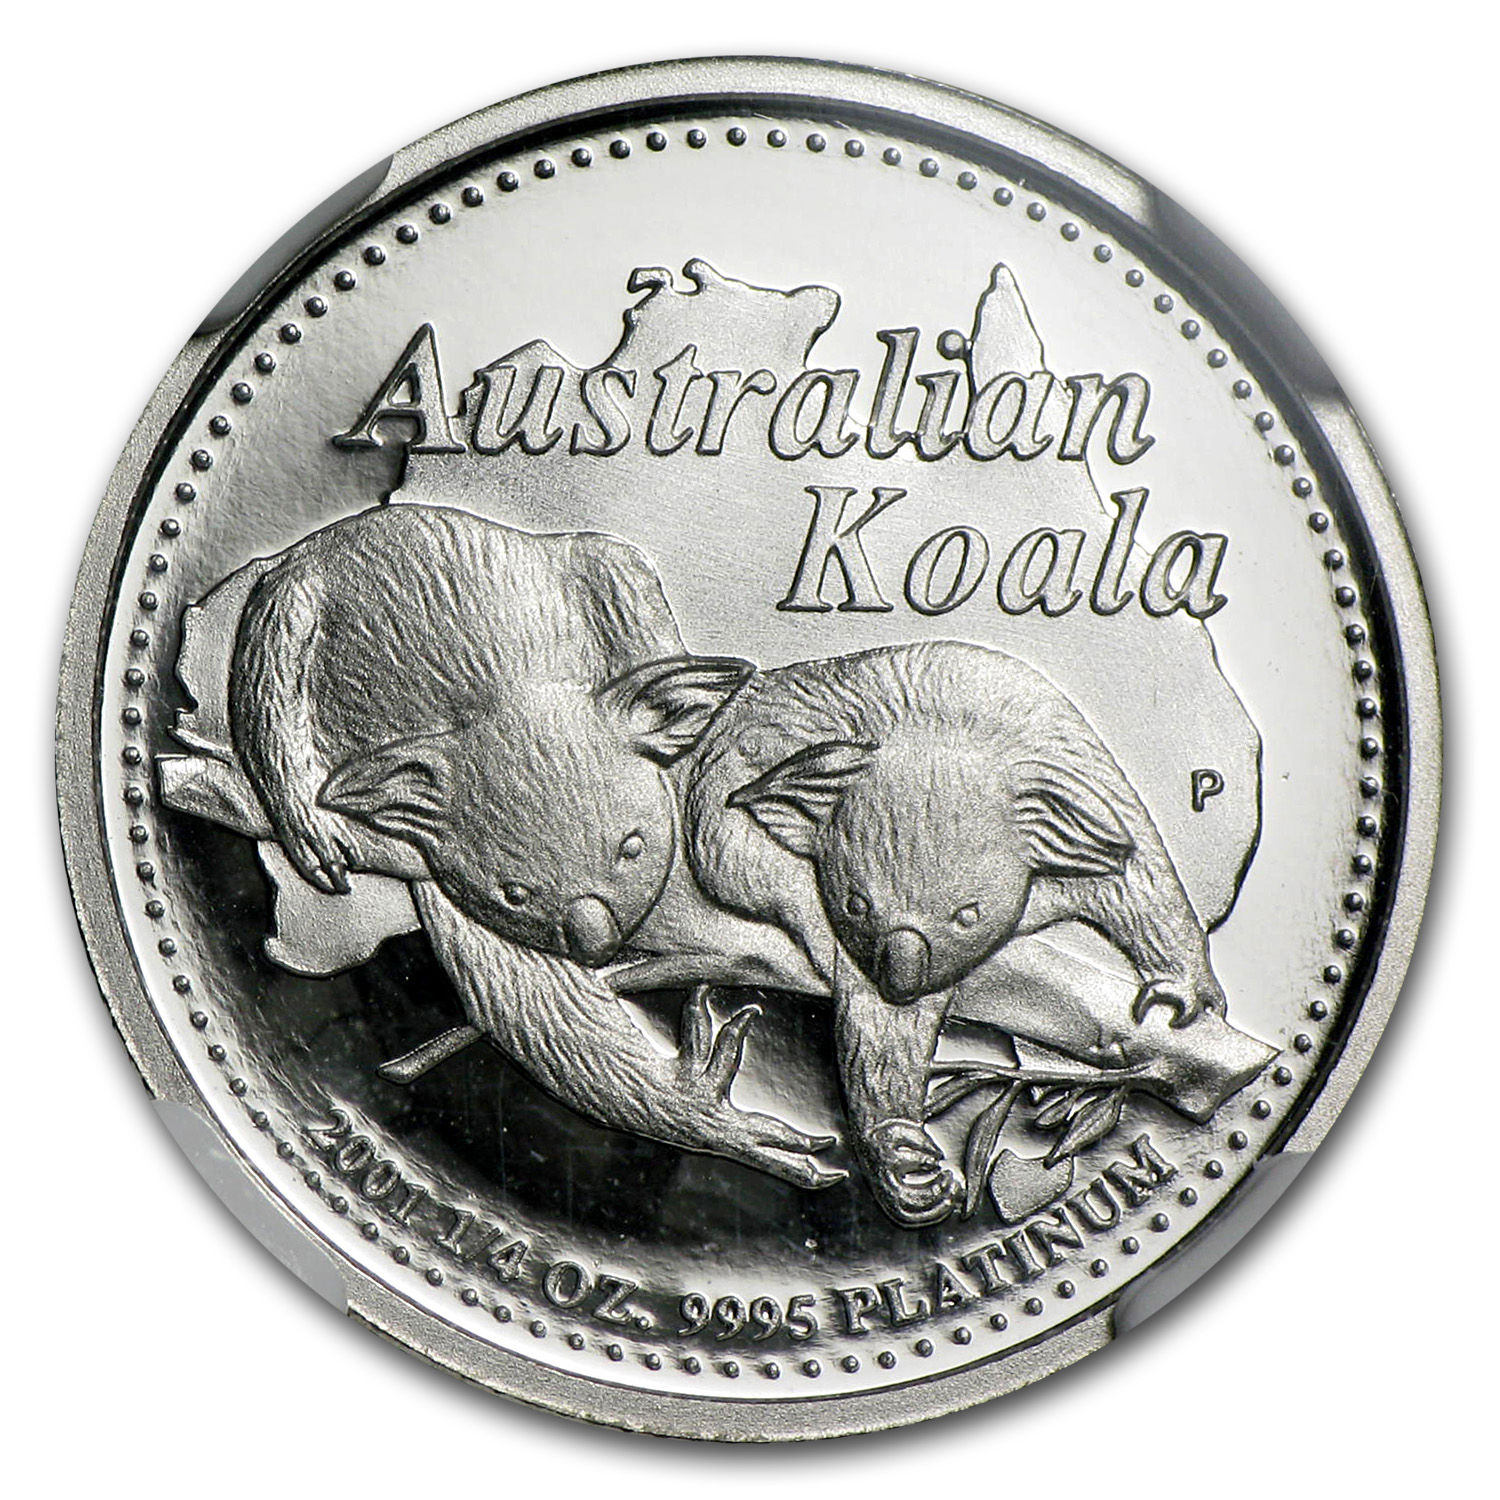 2001 Australia 1/4 oz Proof Platinum Koala PF-70 NGC